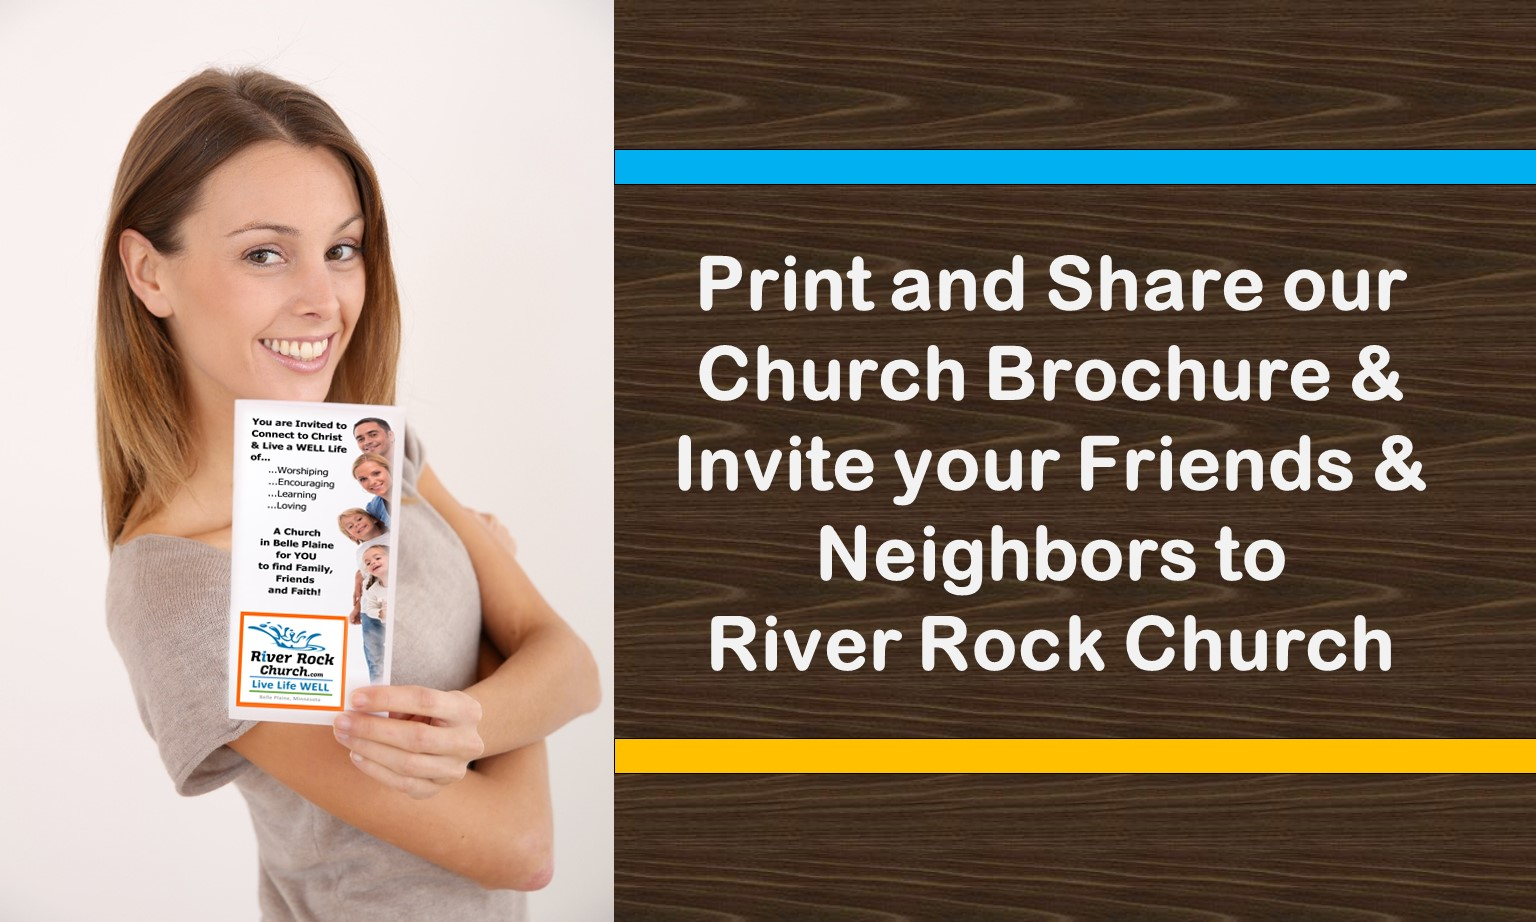 Print and Share River Rock Brochure